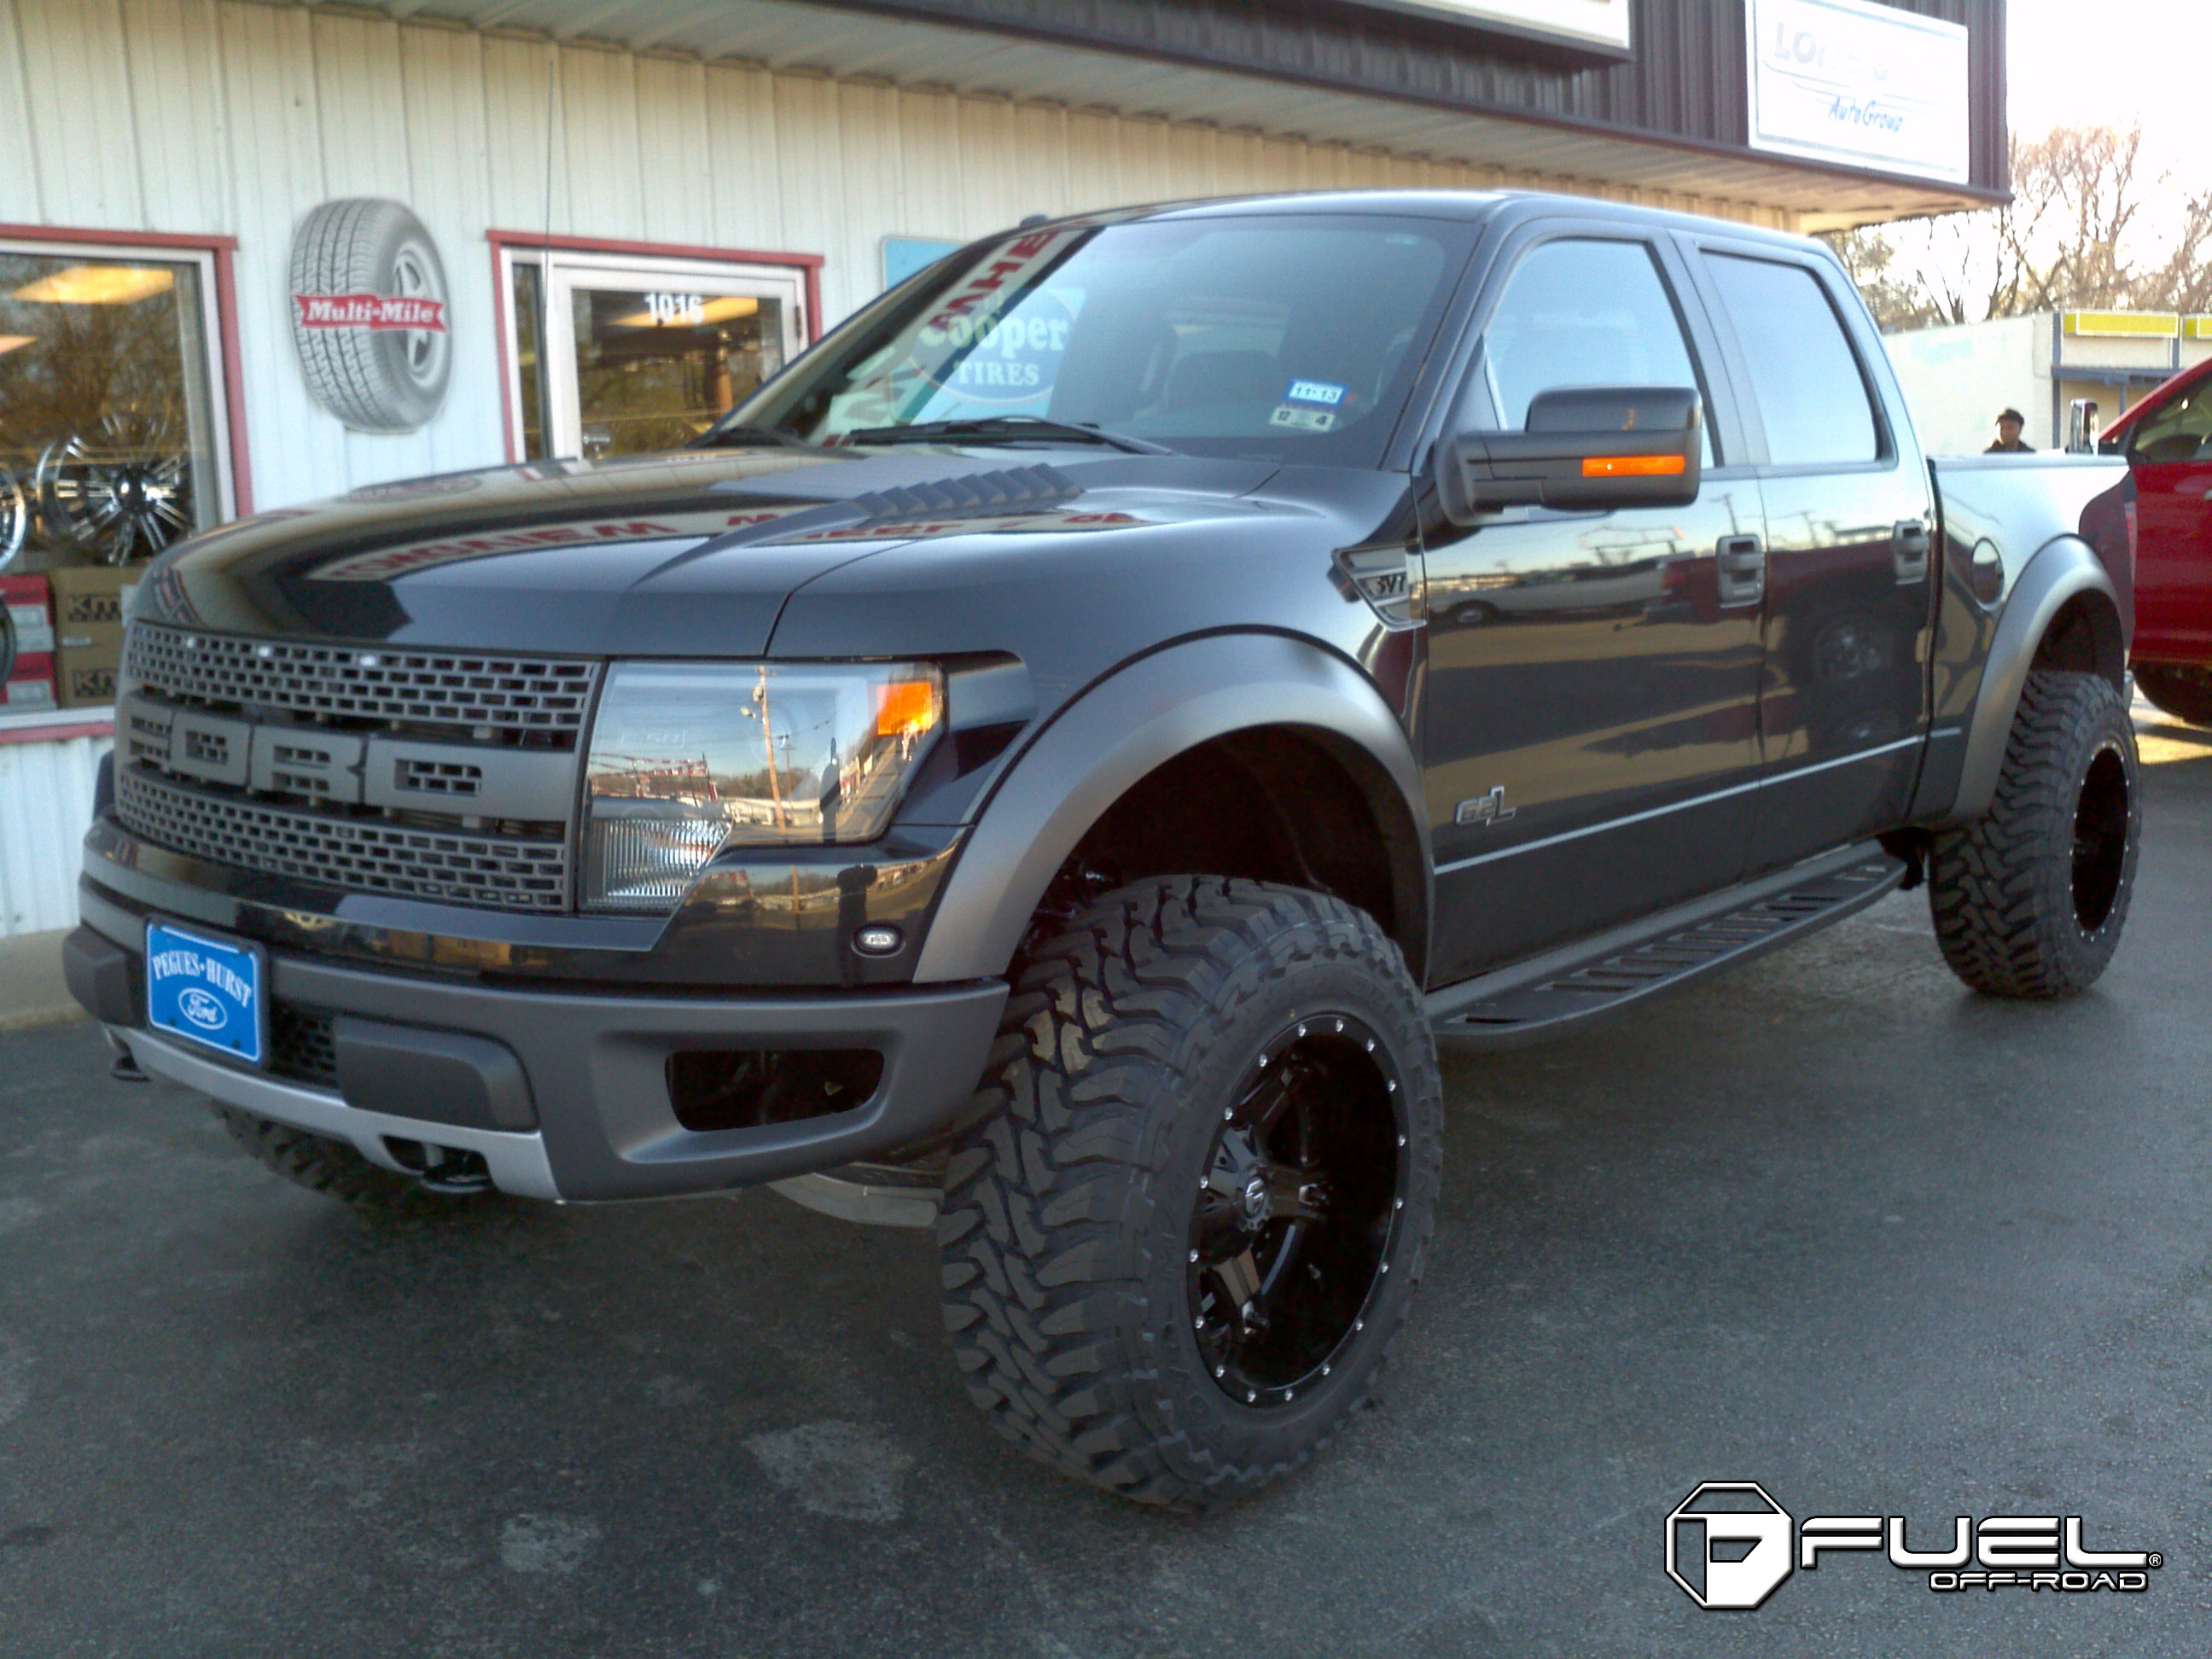 Ford F-150 Driller - D256 Gallery - Fuel Off-Road Wheels